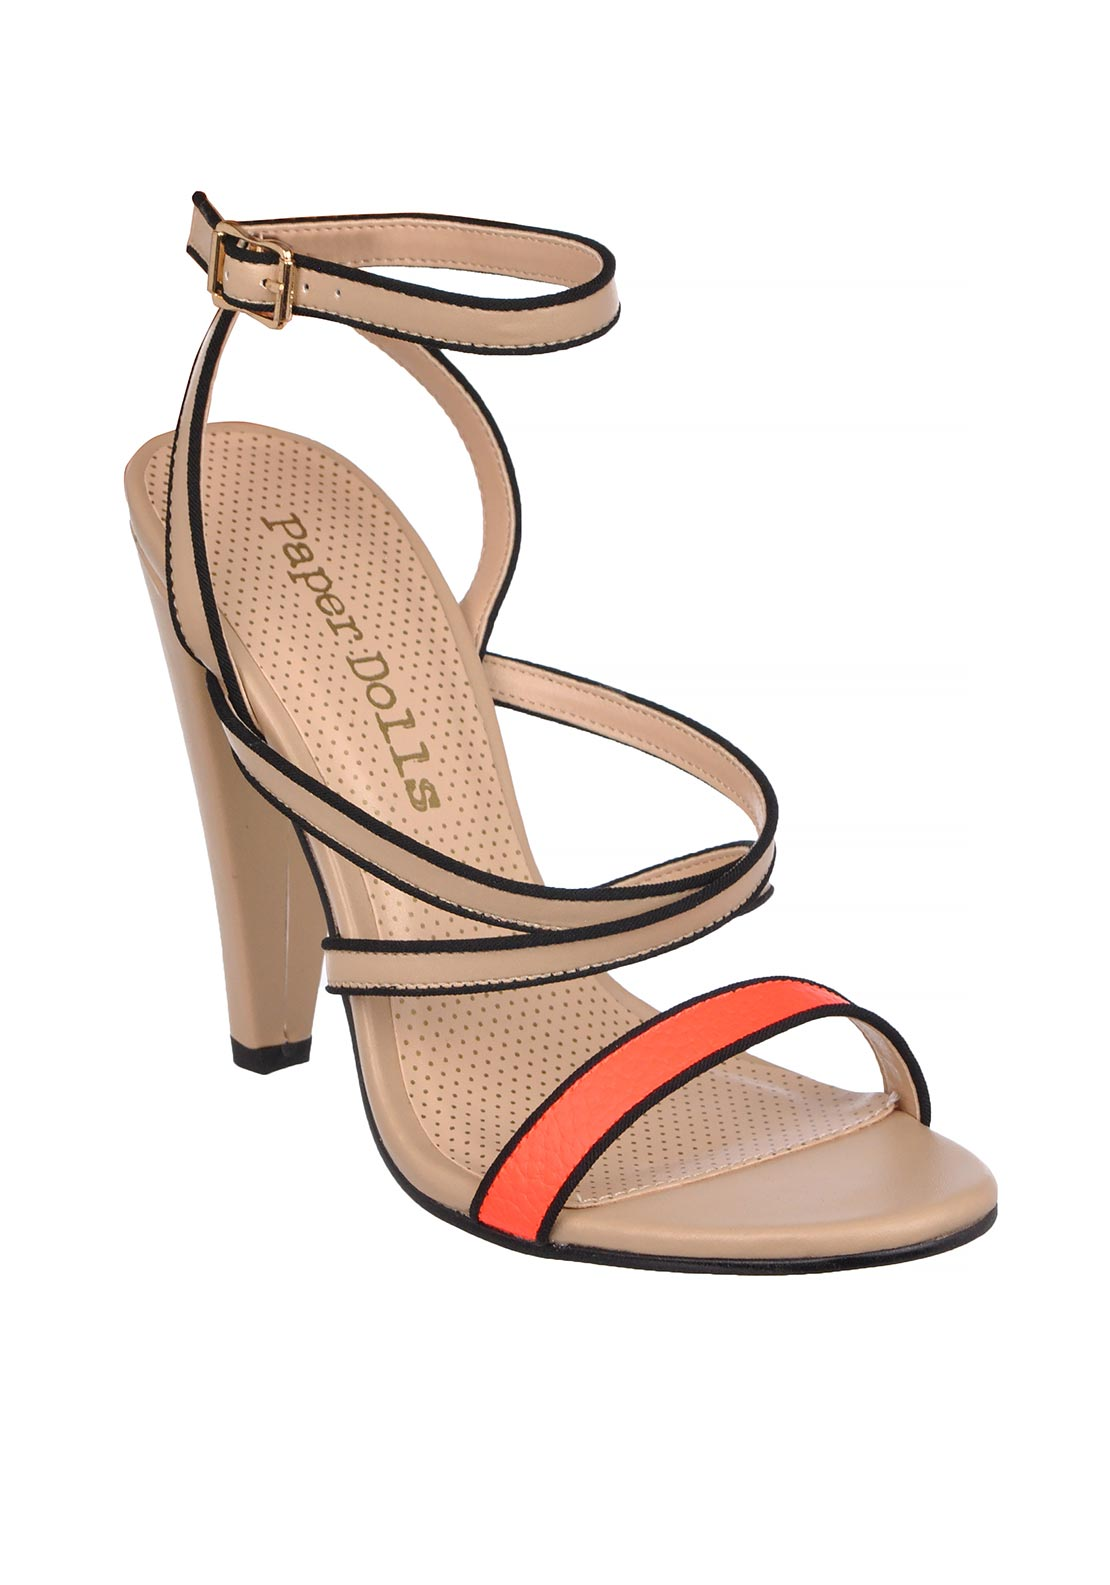 Paper Dolls Criss Cross Ankle Strap Heeled Sandals, Nude